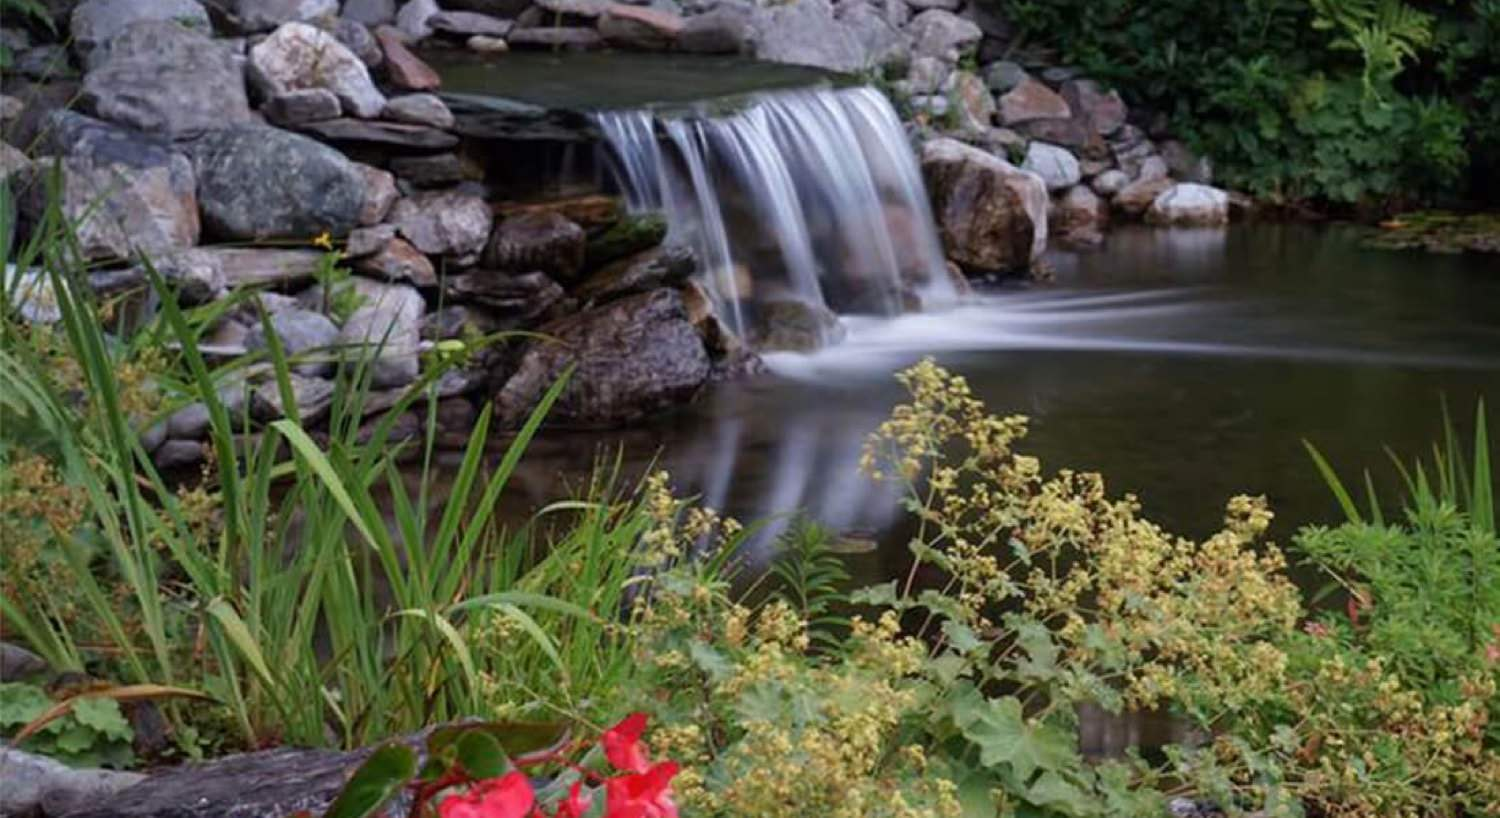 Beautiful small waterfall and pond surrounded by rocks, plants and flowers